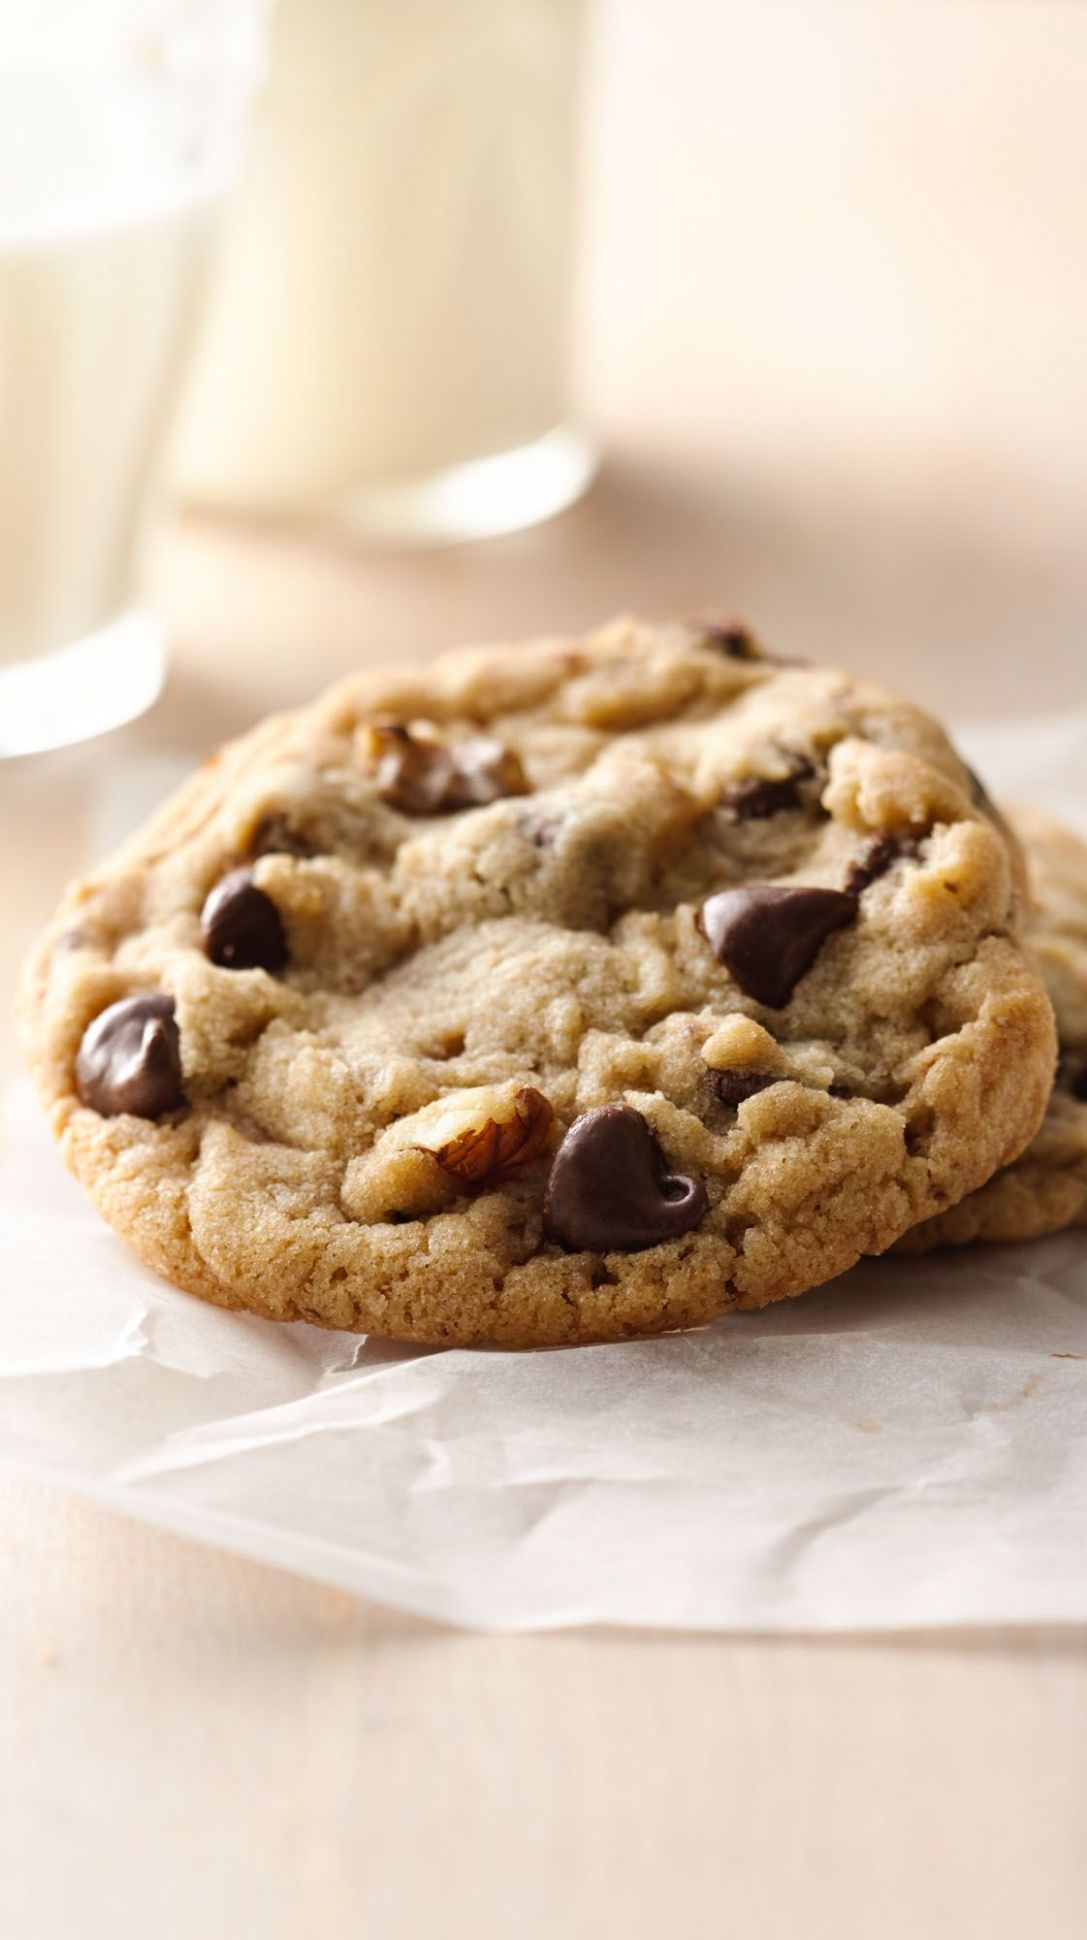 Ultimate Chocolate Chip Cookies - Dessert Recipes On Pinterest